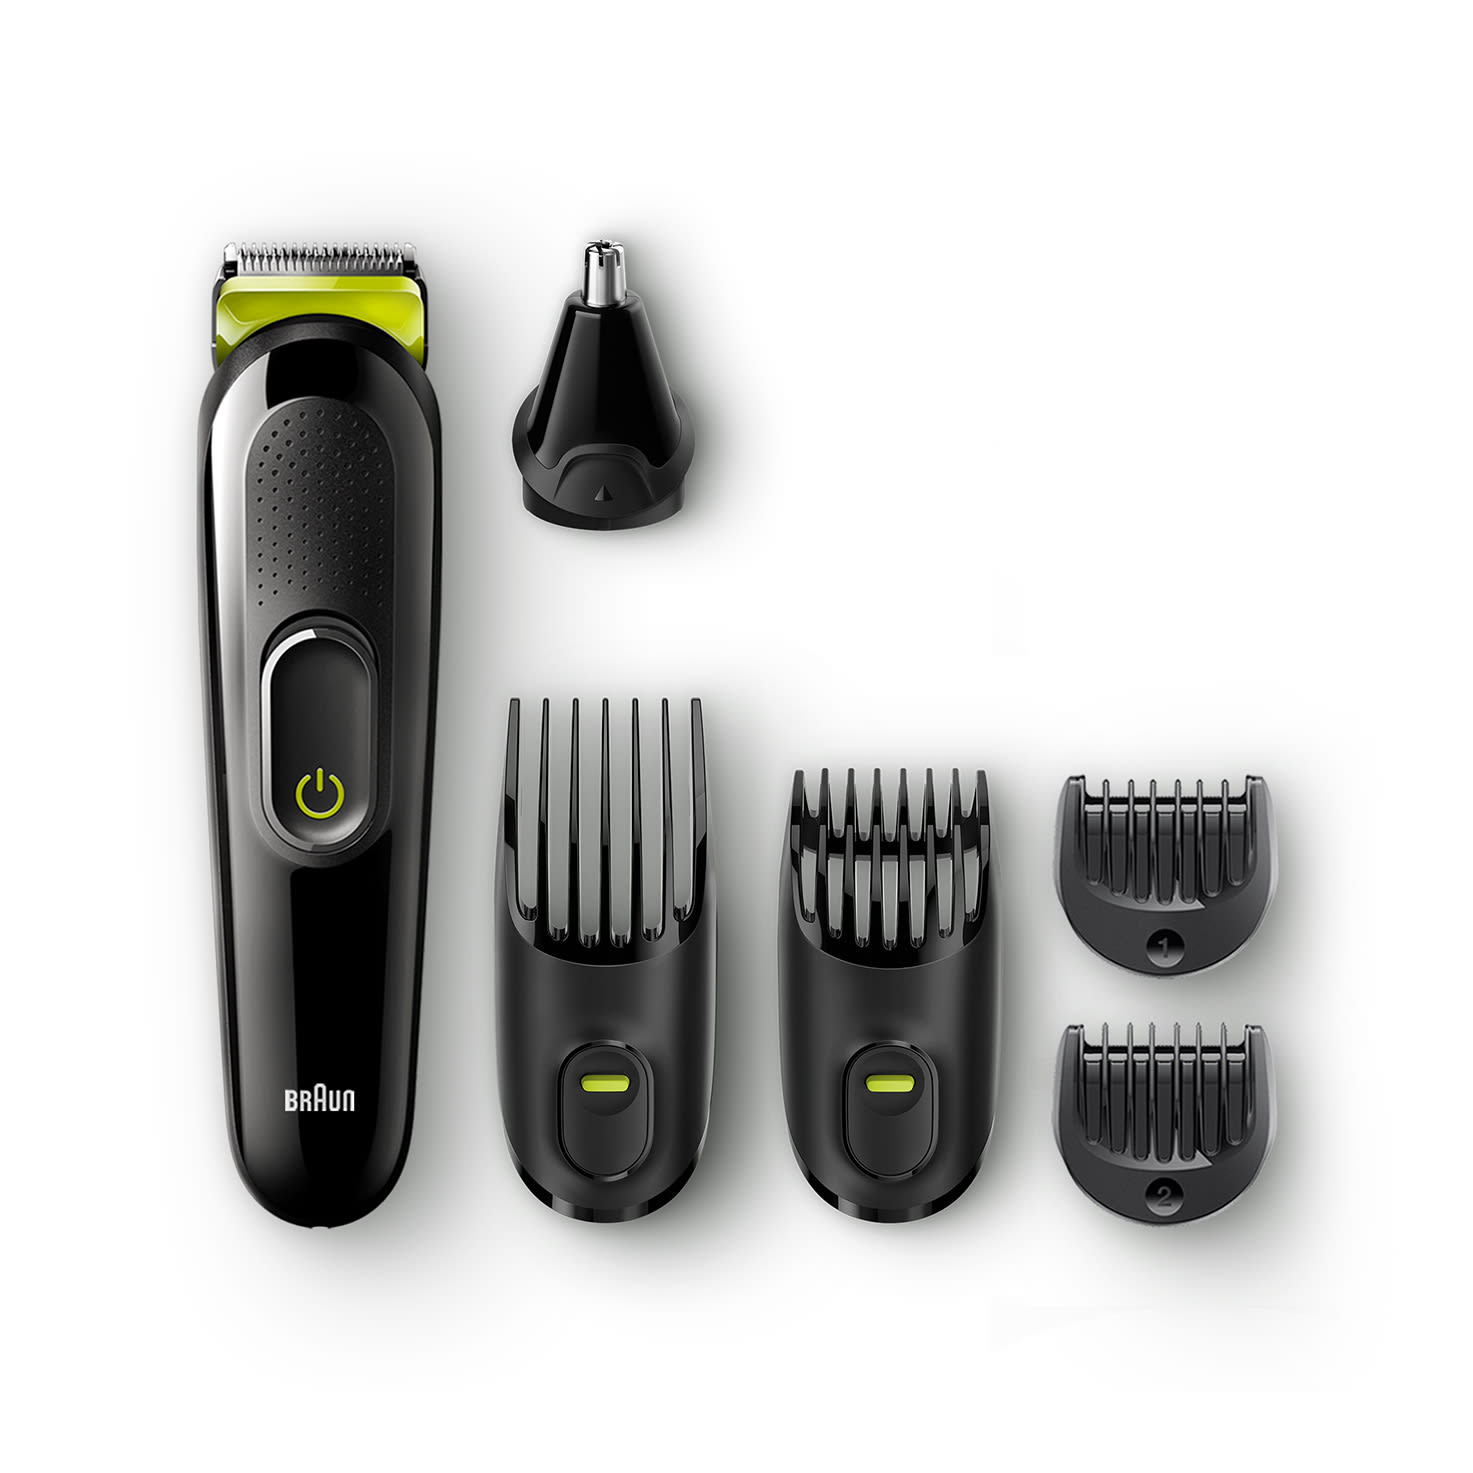 All-in-one trimmer MGK3021, 6-in-1 trimmer, 5 attachments black 2